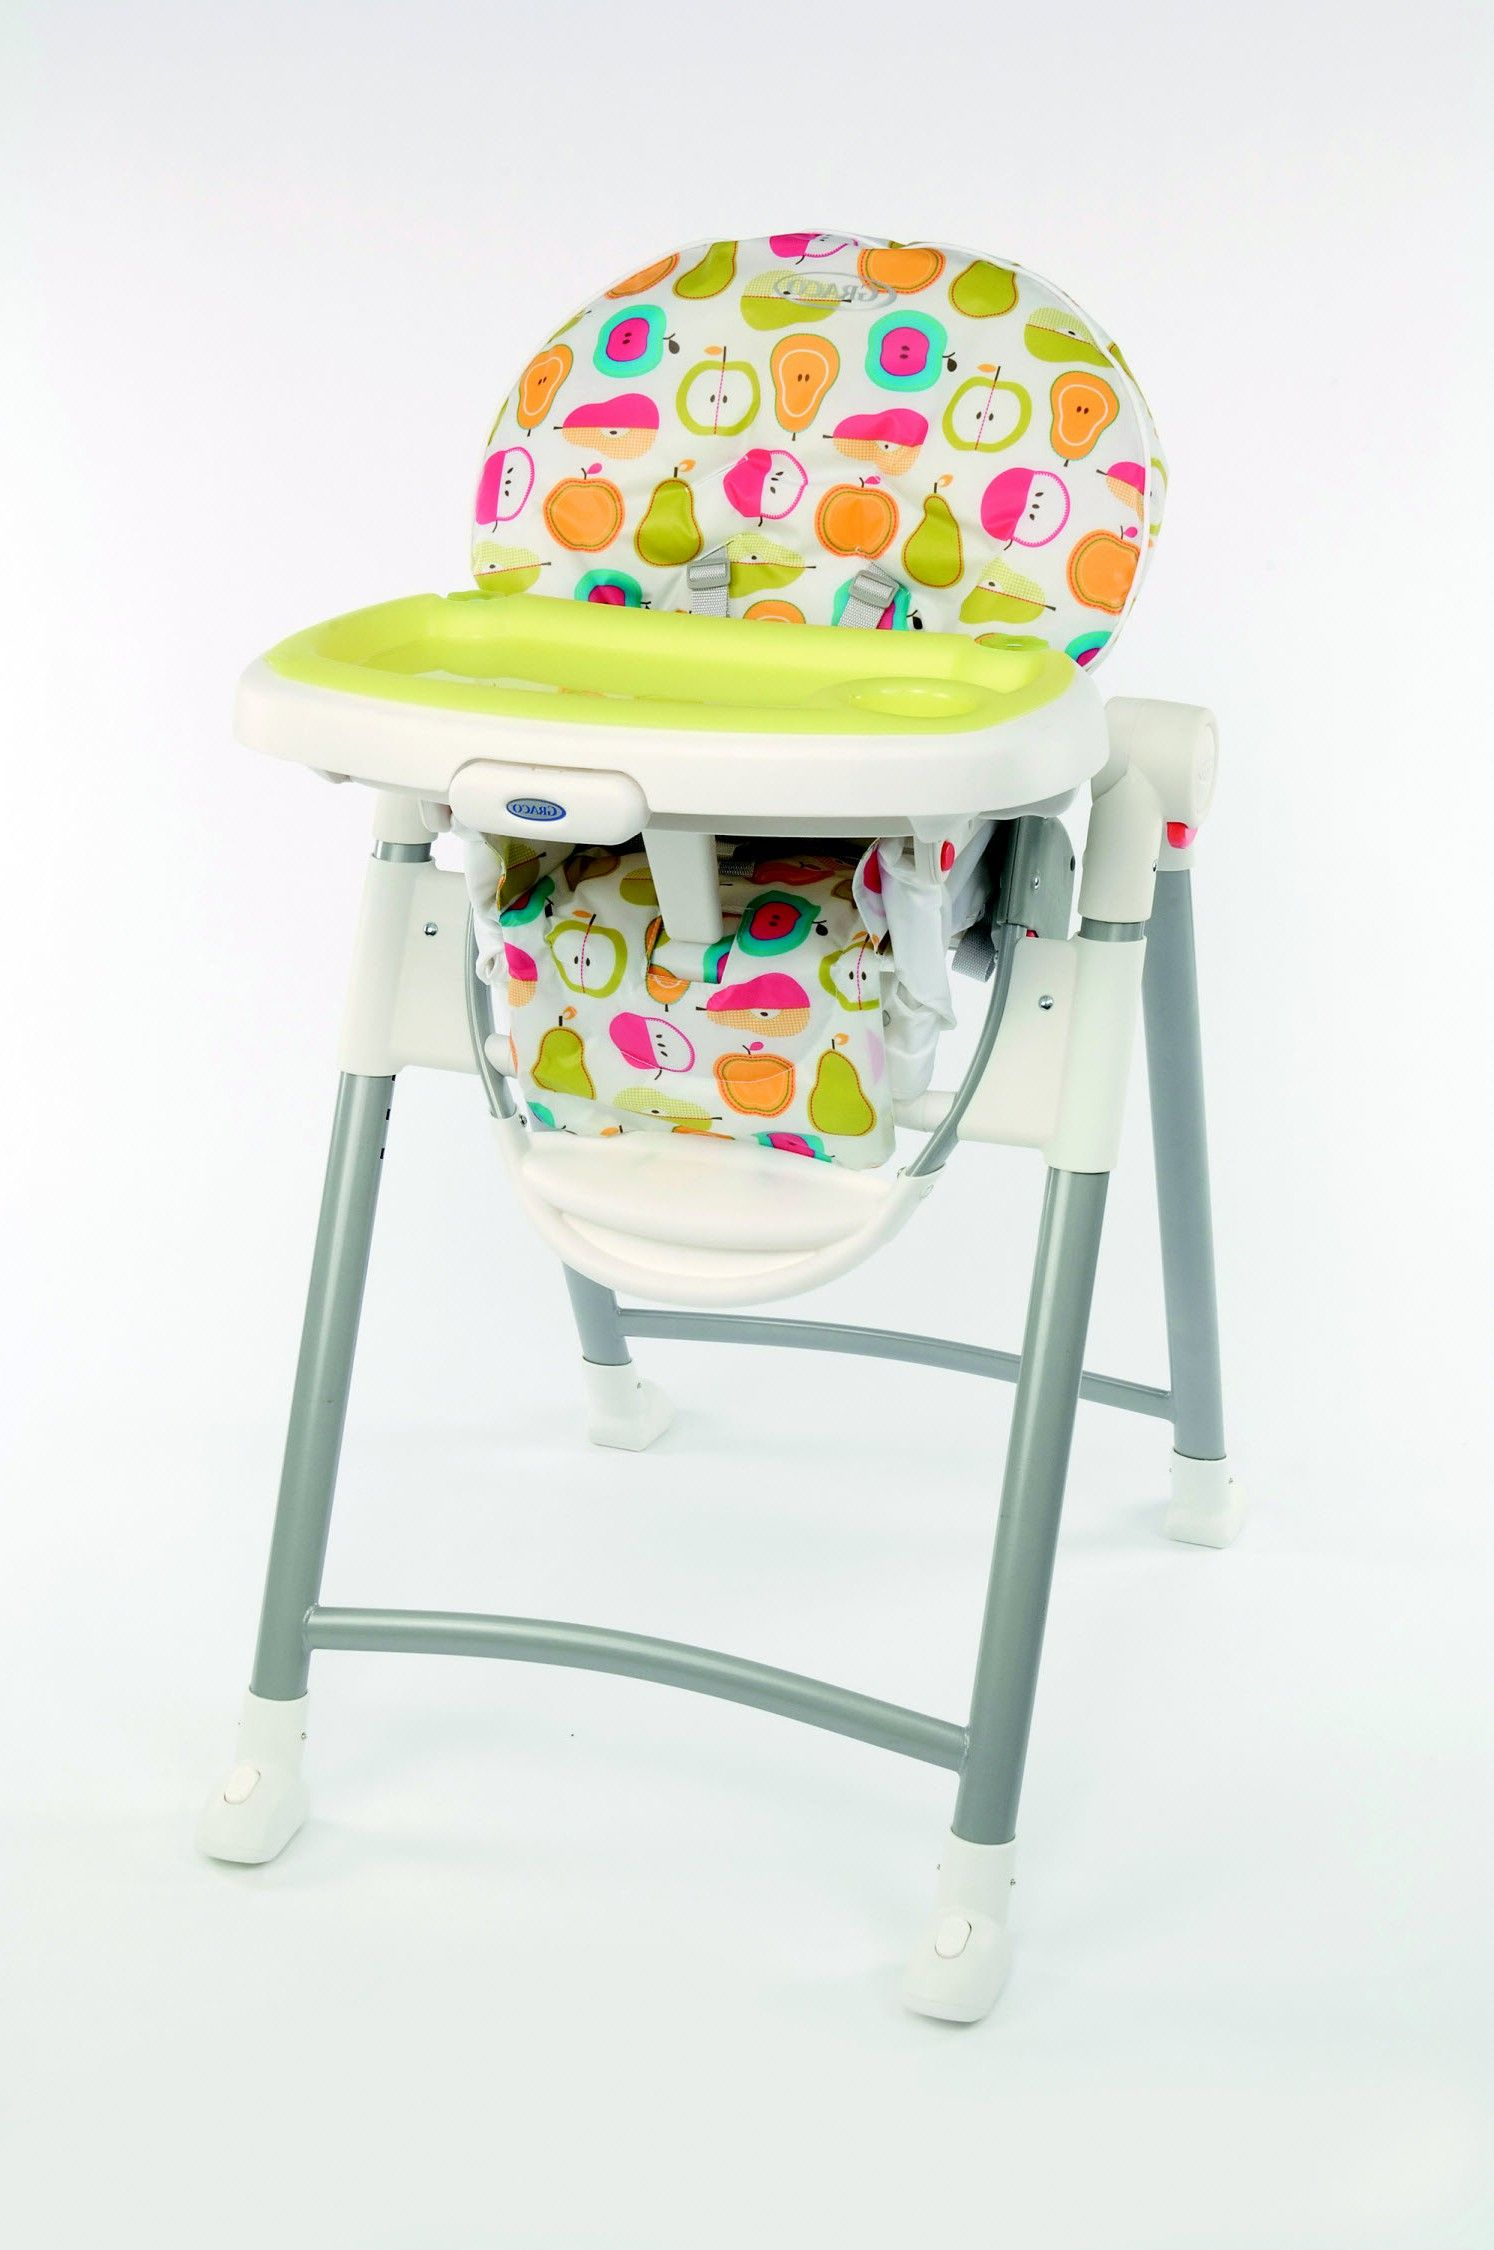 Graco Contempo High Chair Http Www Imagee Net Graco